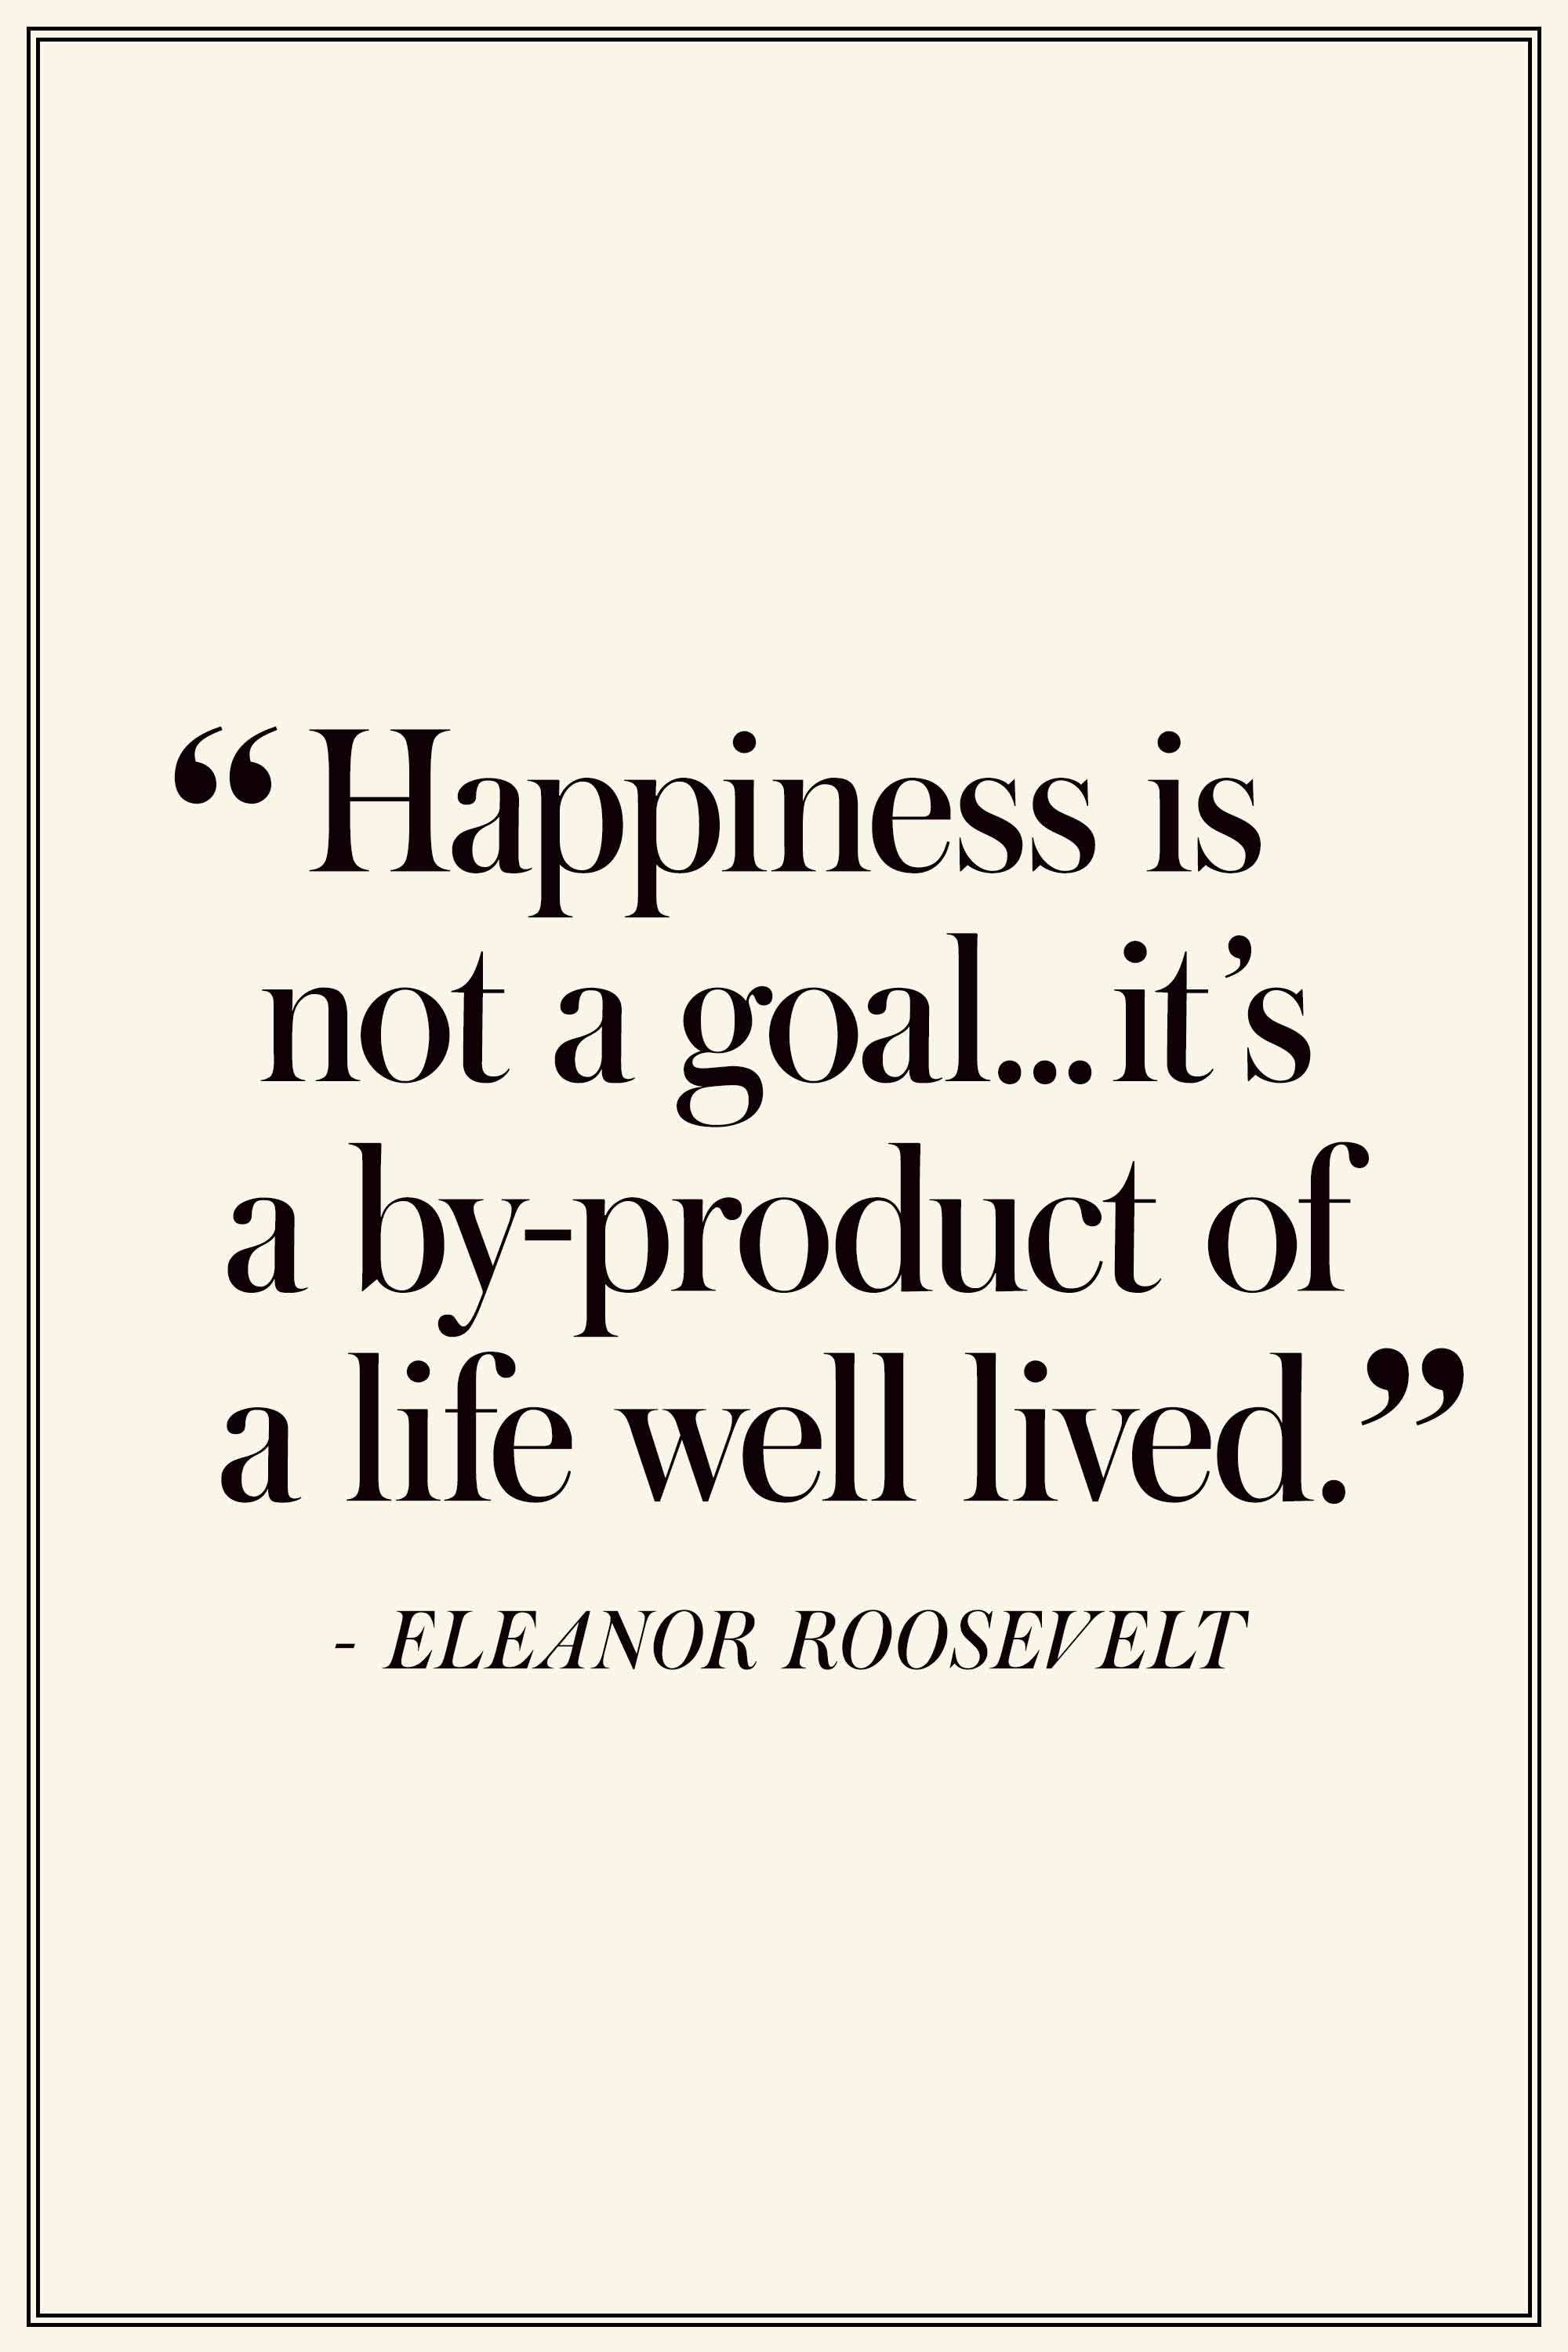 Best Famous Quotes About Life Love Happiness: Famous Quotes About Happiness